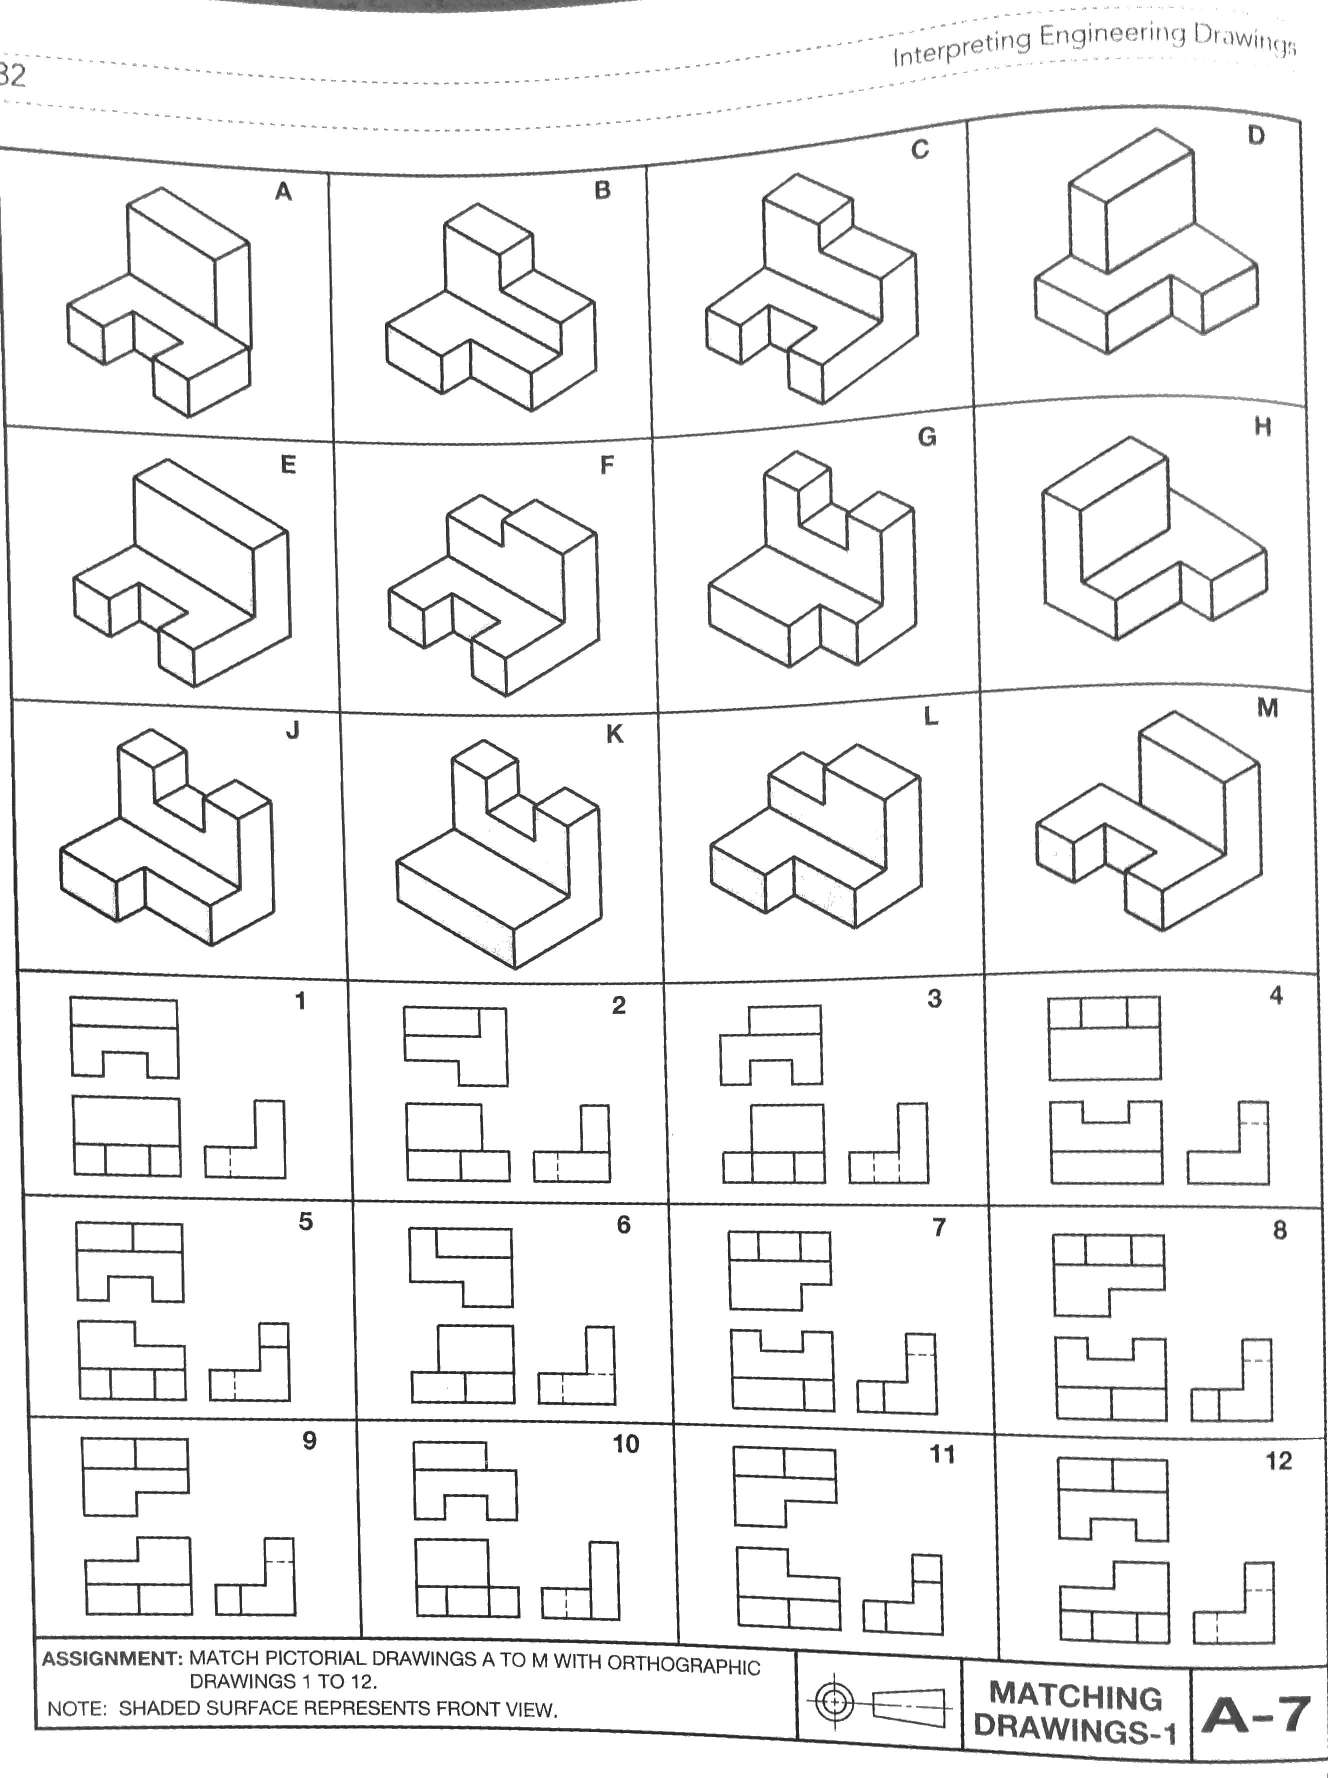 Solved: Match Pictorial Drawing A To M With Orthographic D